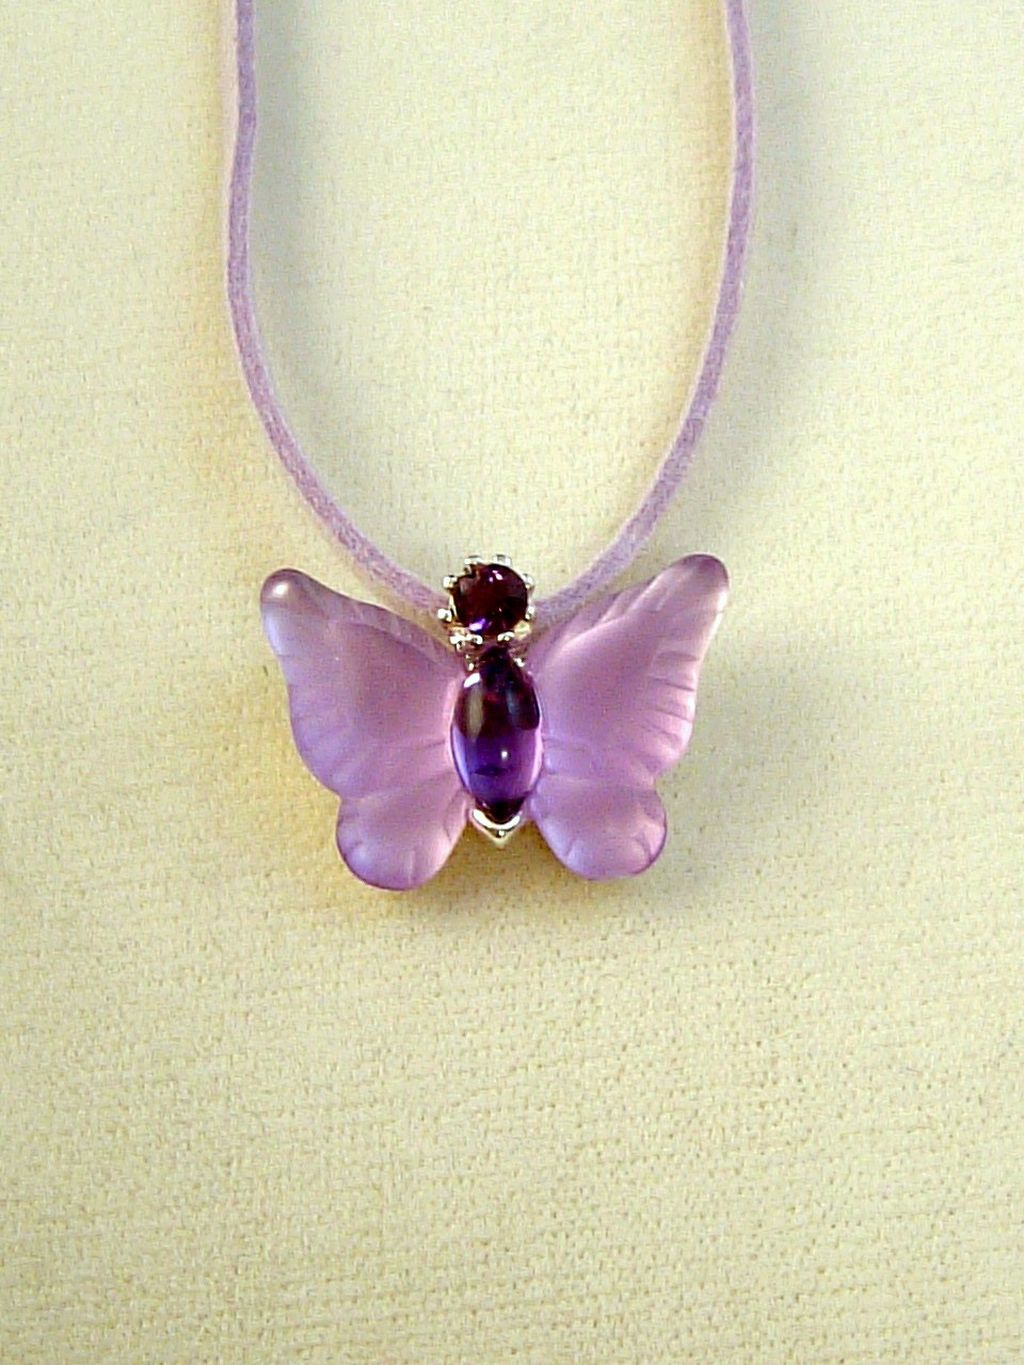 Purple Butterfly Pendant Necklace, Genuine Austrian Crystals, Leather Cord, Anti-allergic Jewelry